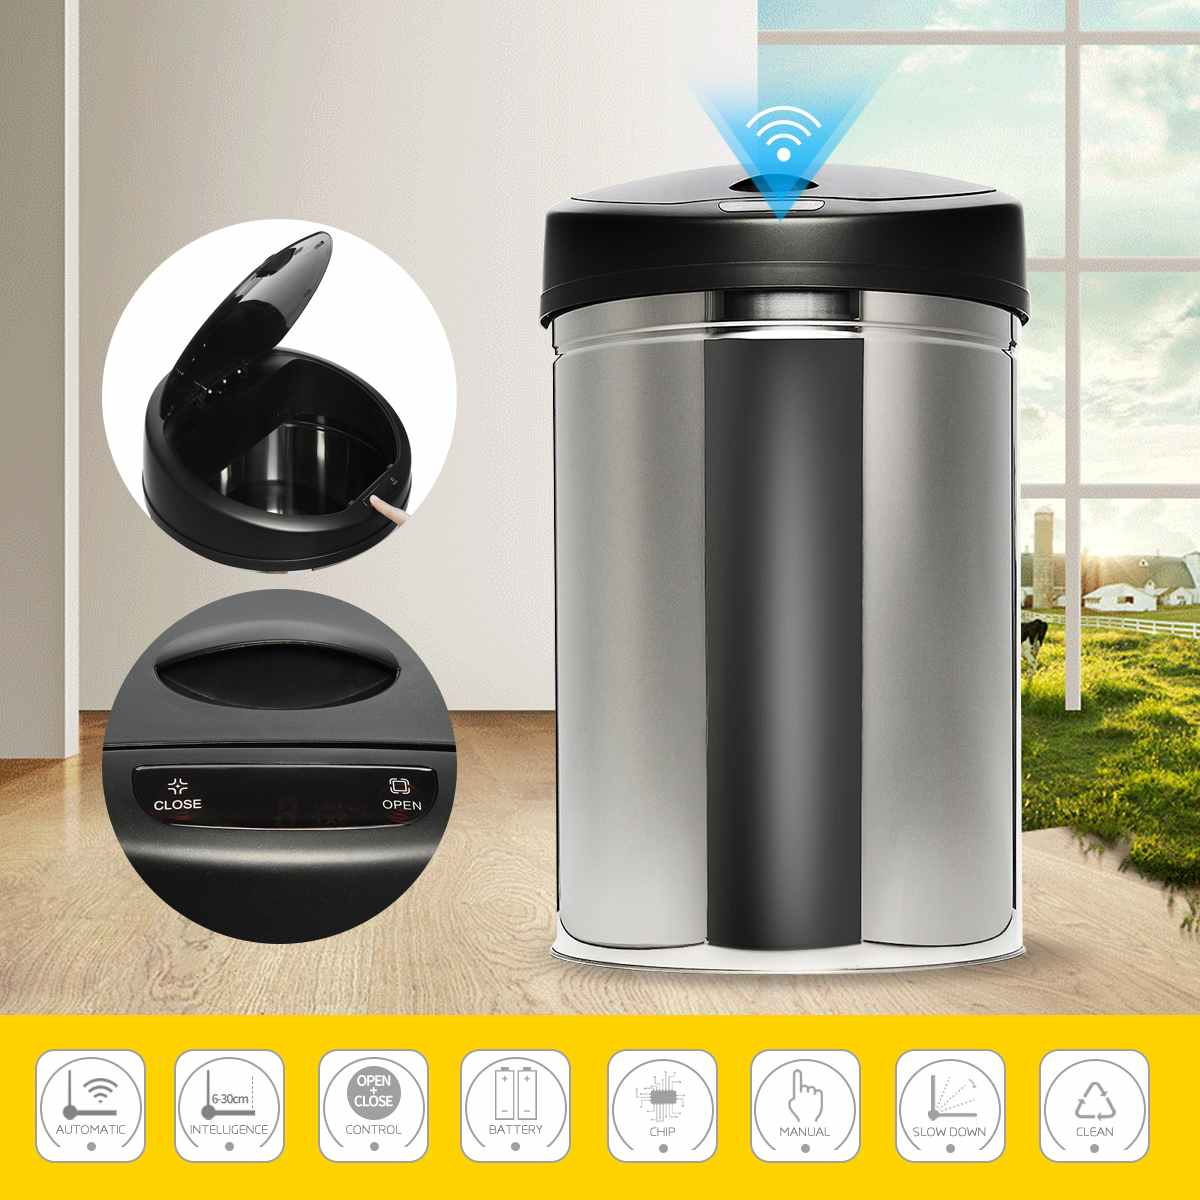 30/40/50/60L Stainless Steel Automatic Electronic Dustbin SensorTact Dustbin Rubbish Waste Bin Kitchen Trash Smart Motion Sensor|Waste Bins| |  - title=